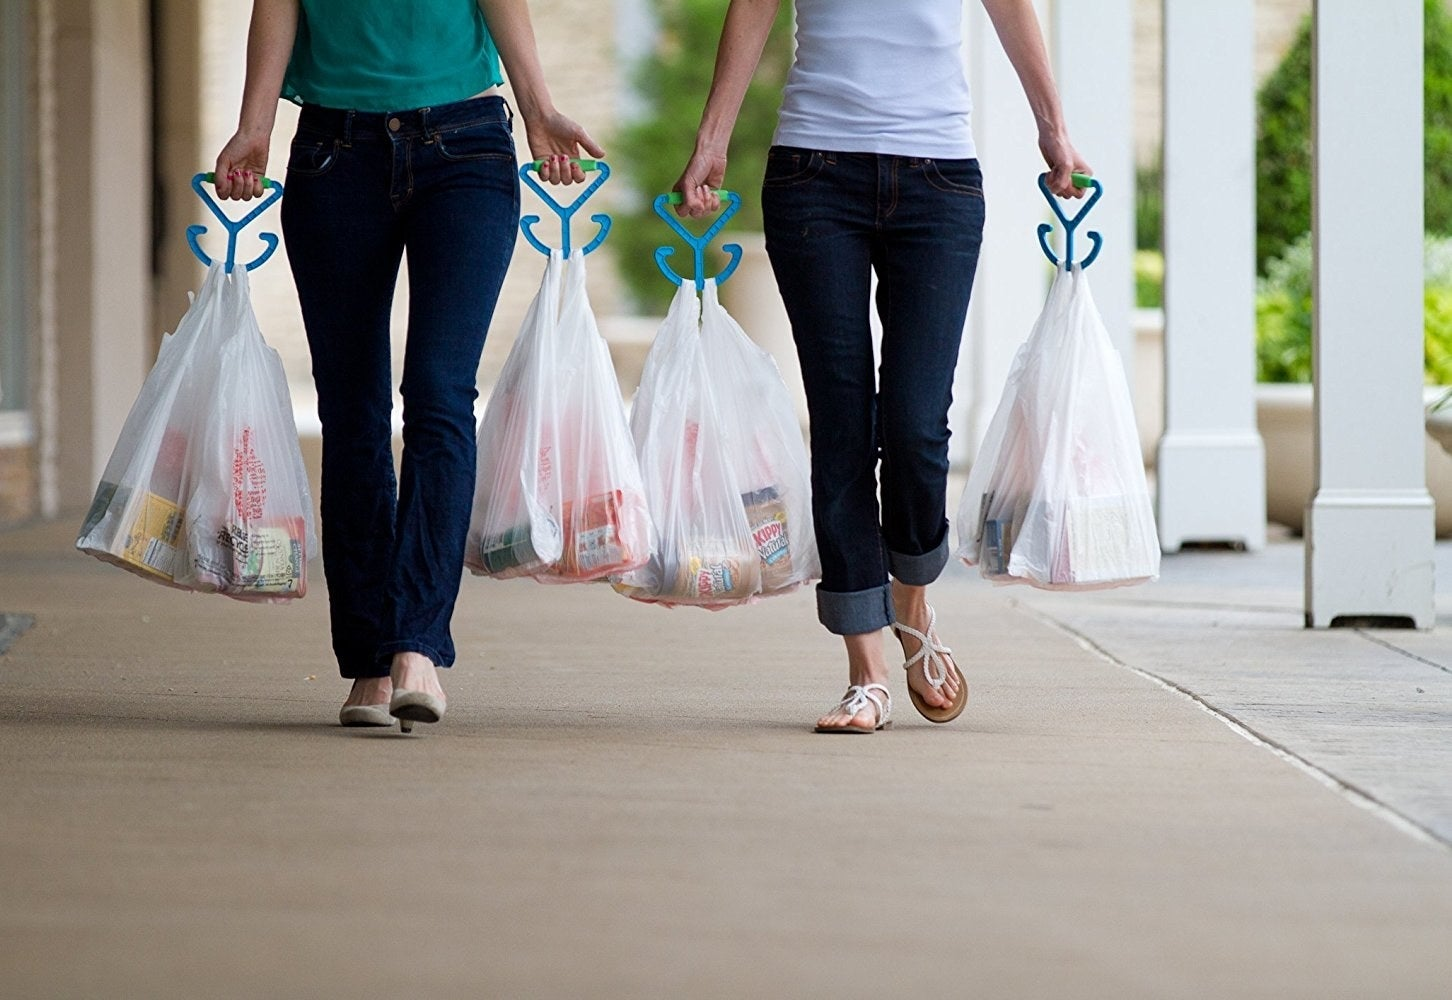 two models using a bag handle in each hand to carry lots of grocery bags